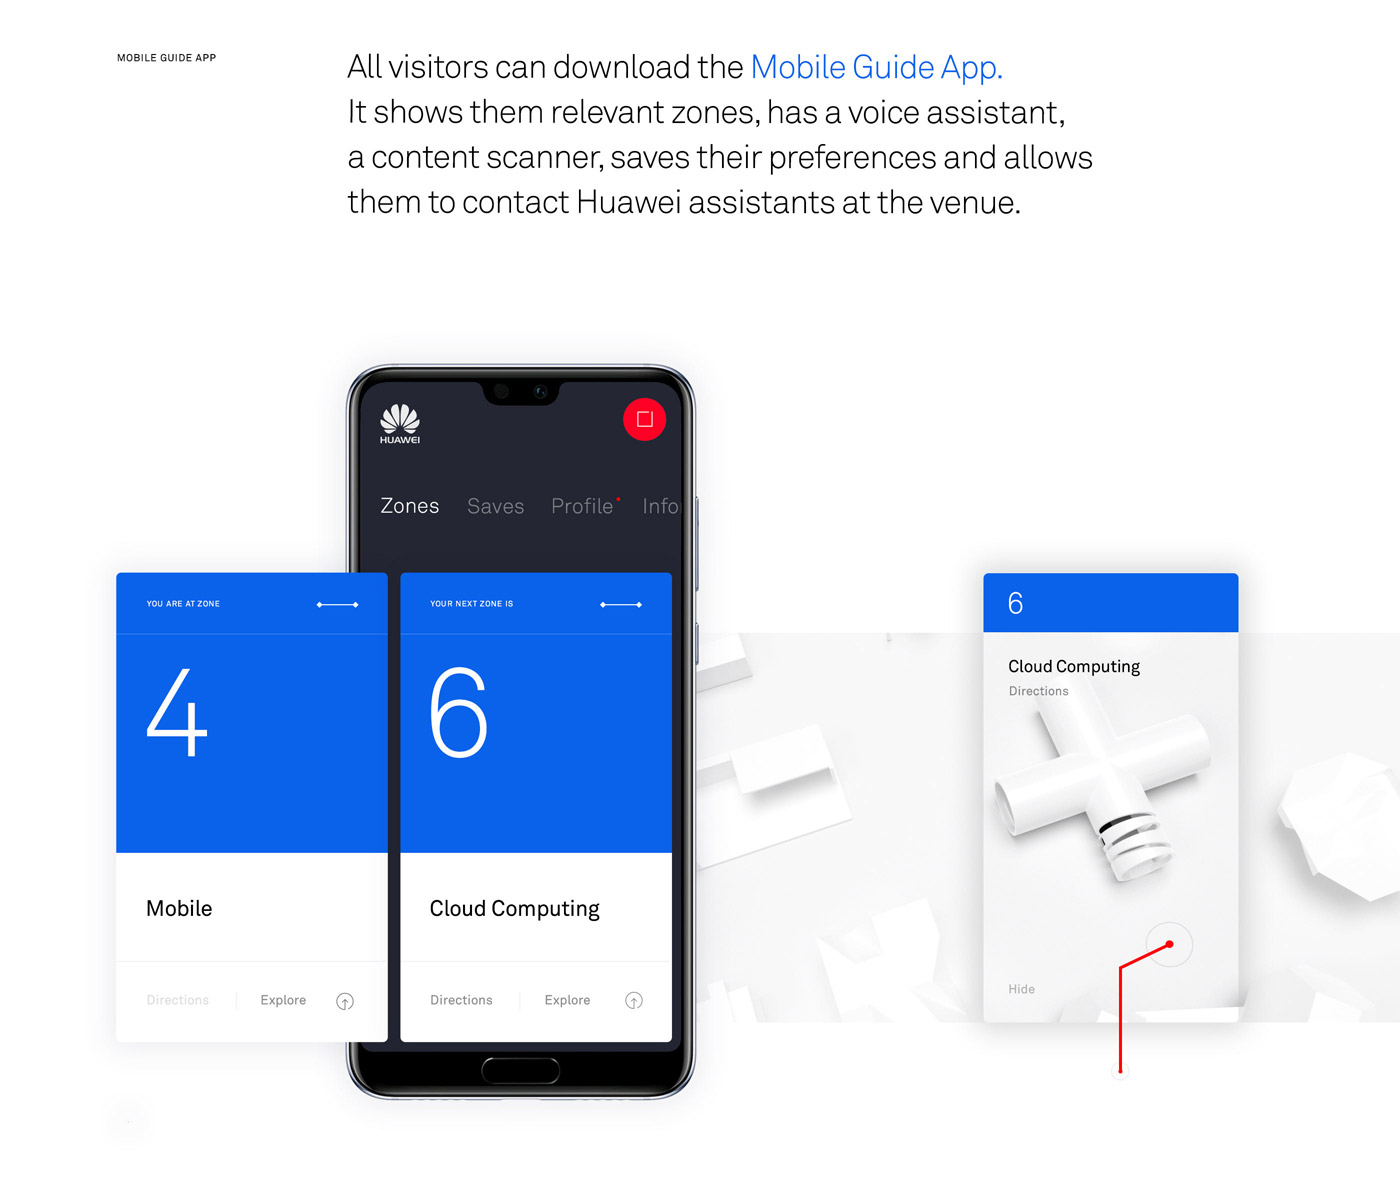 Huawei Exhibition UI design concept by Marcus Brown.